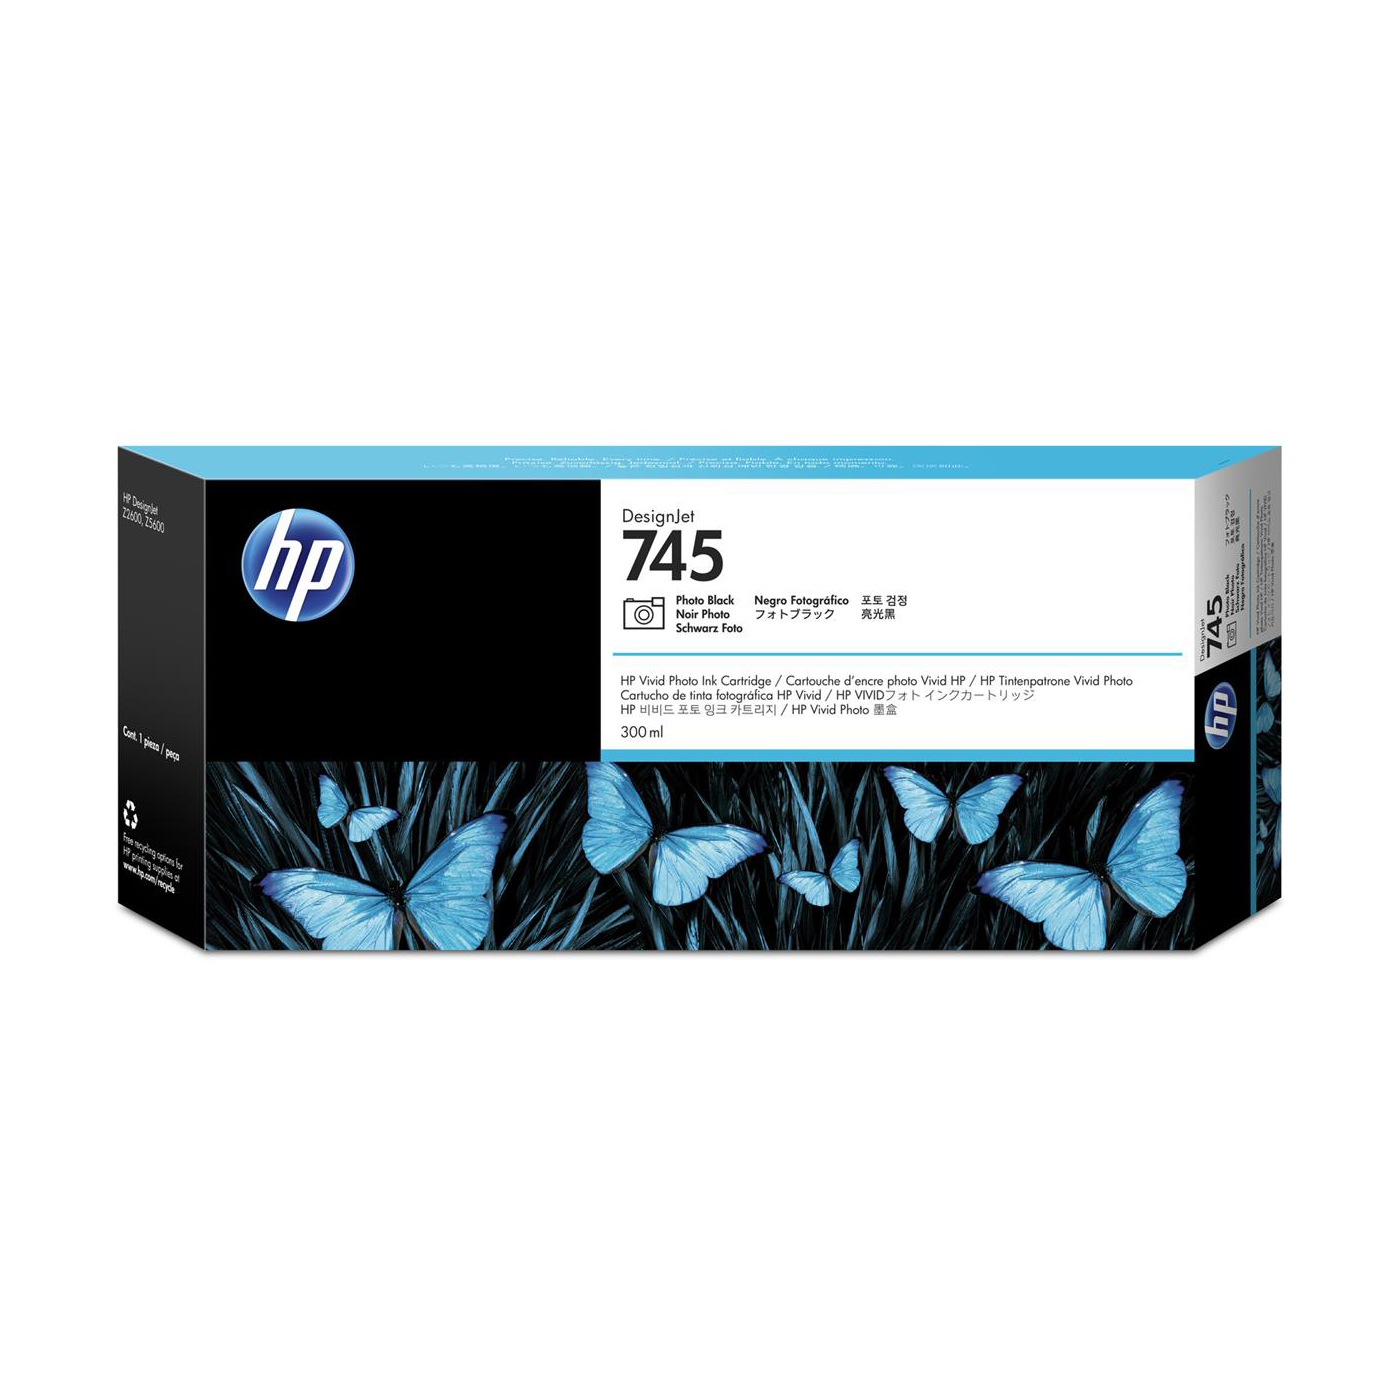 HP 745 300ml DesignJet Photo Black Ink Cartridge F9K04A *3 to 5 Day Leadtime*